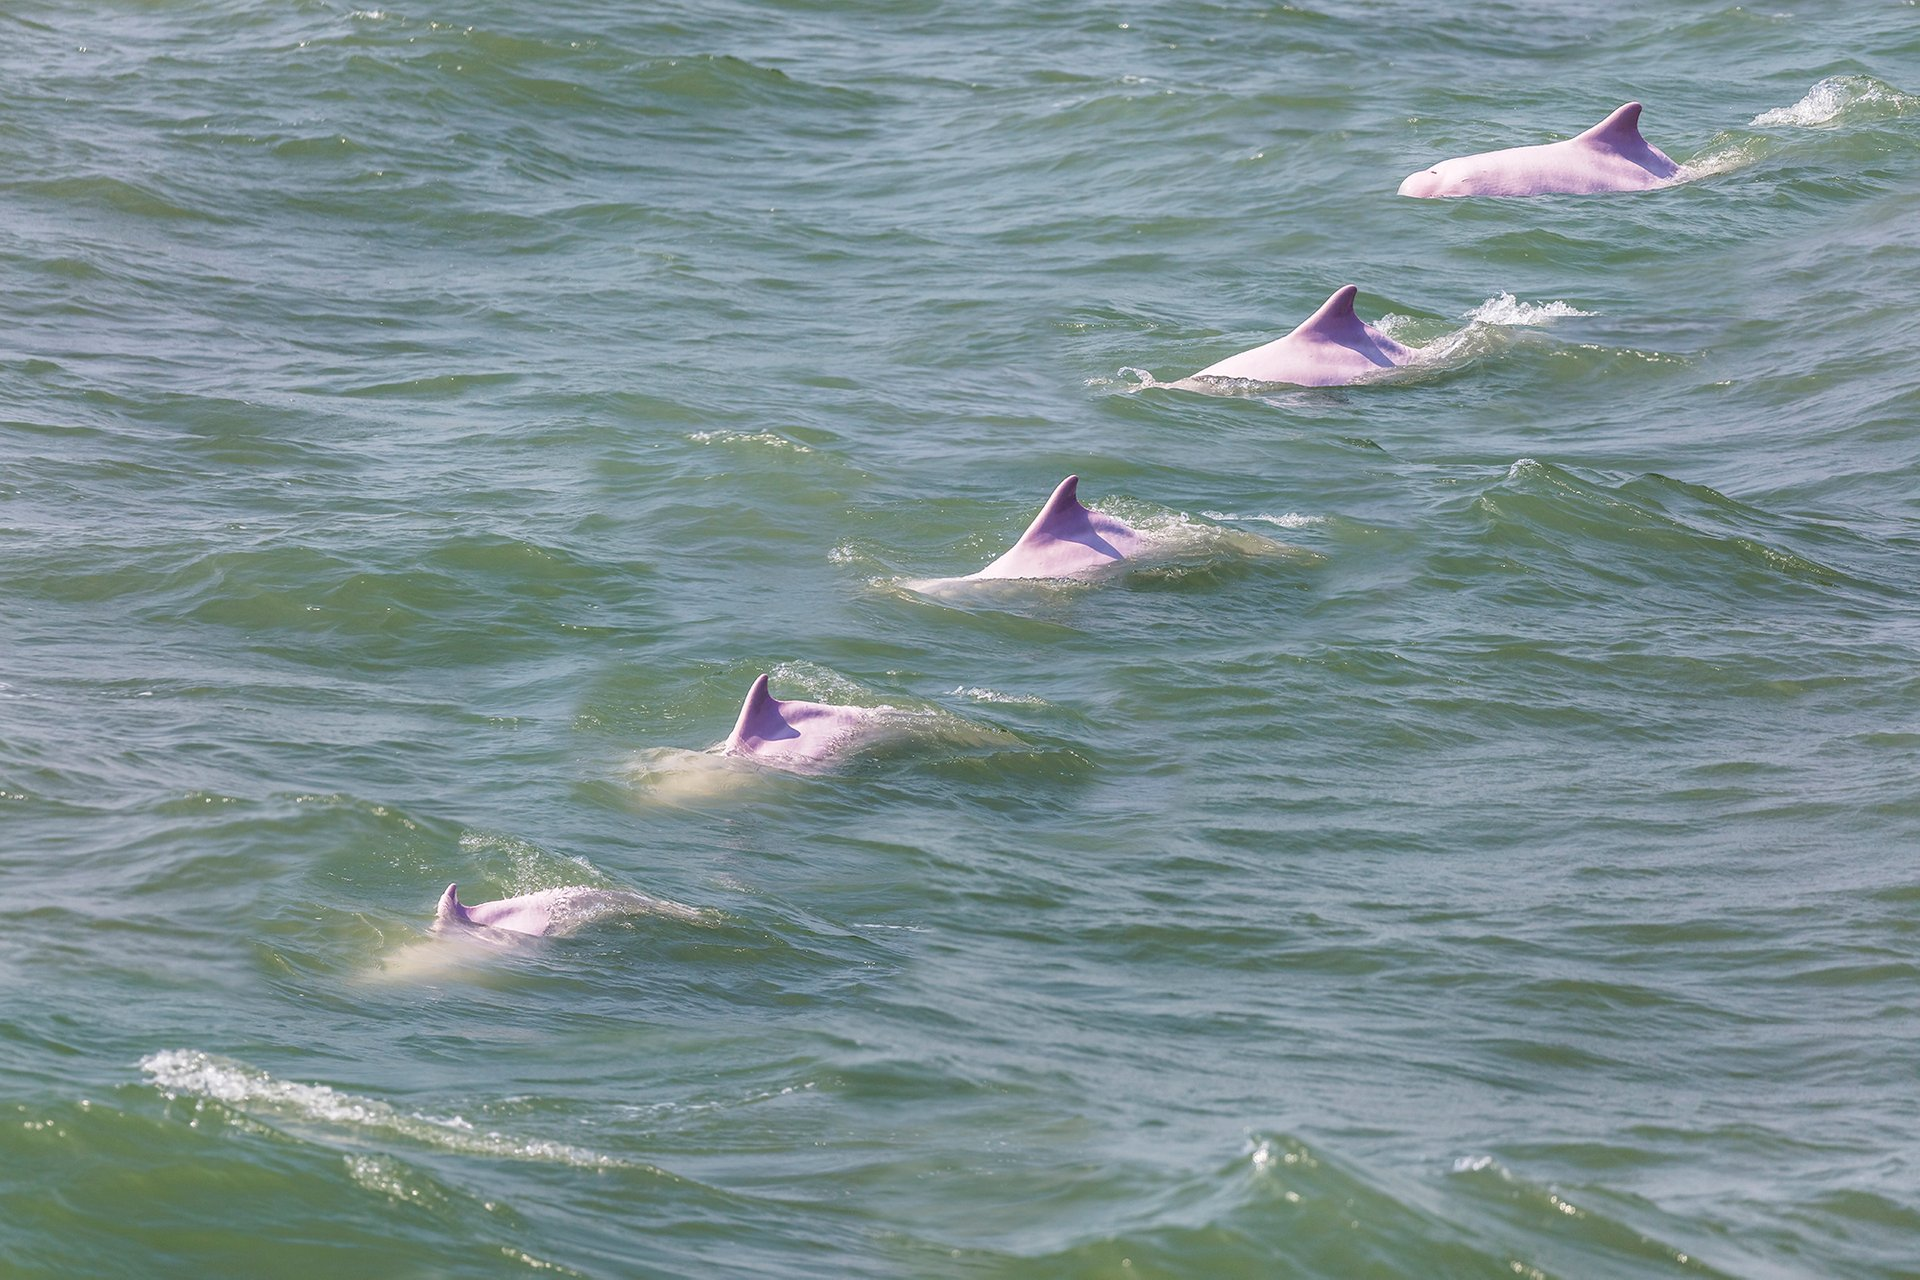 Best time for Pink Dolphin Watching in Hong Kong